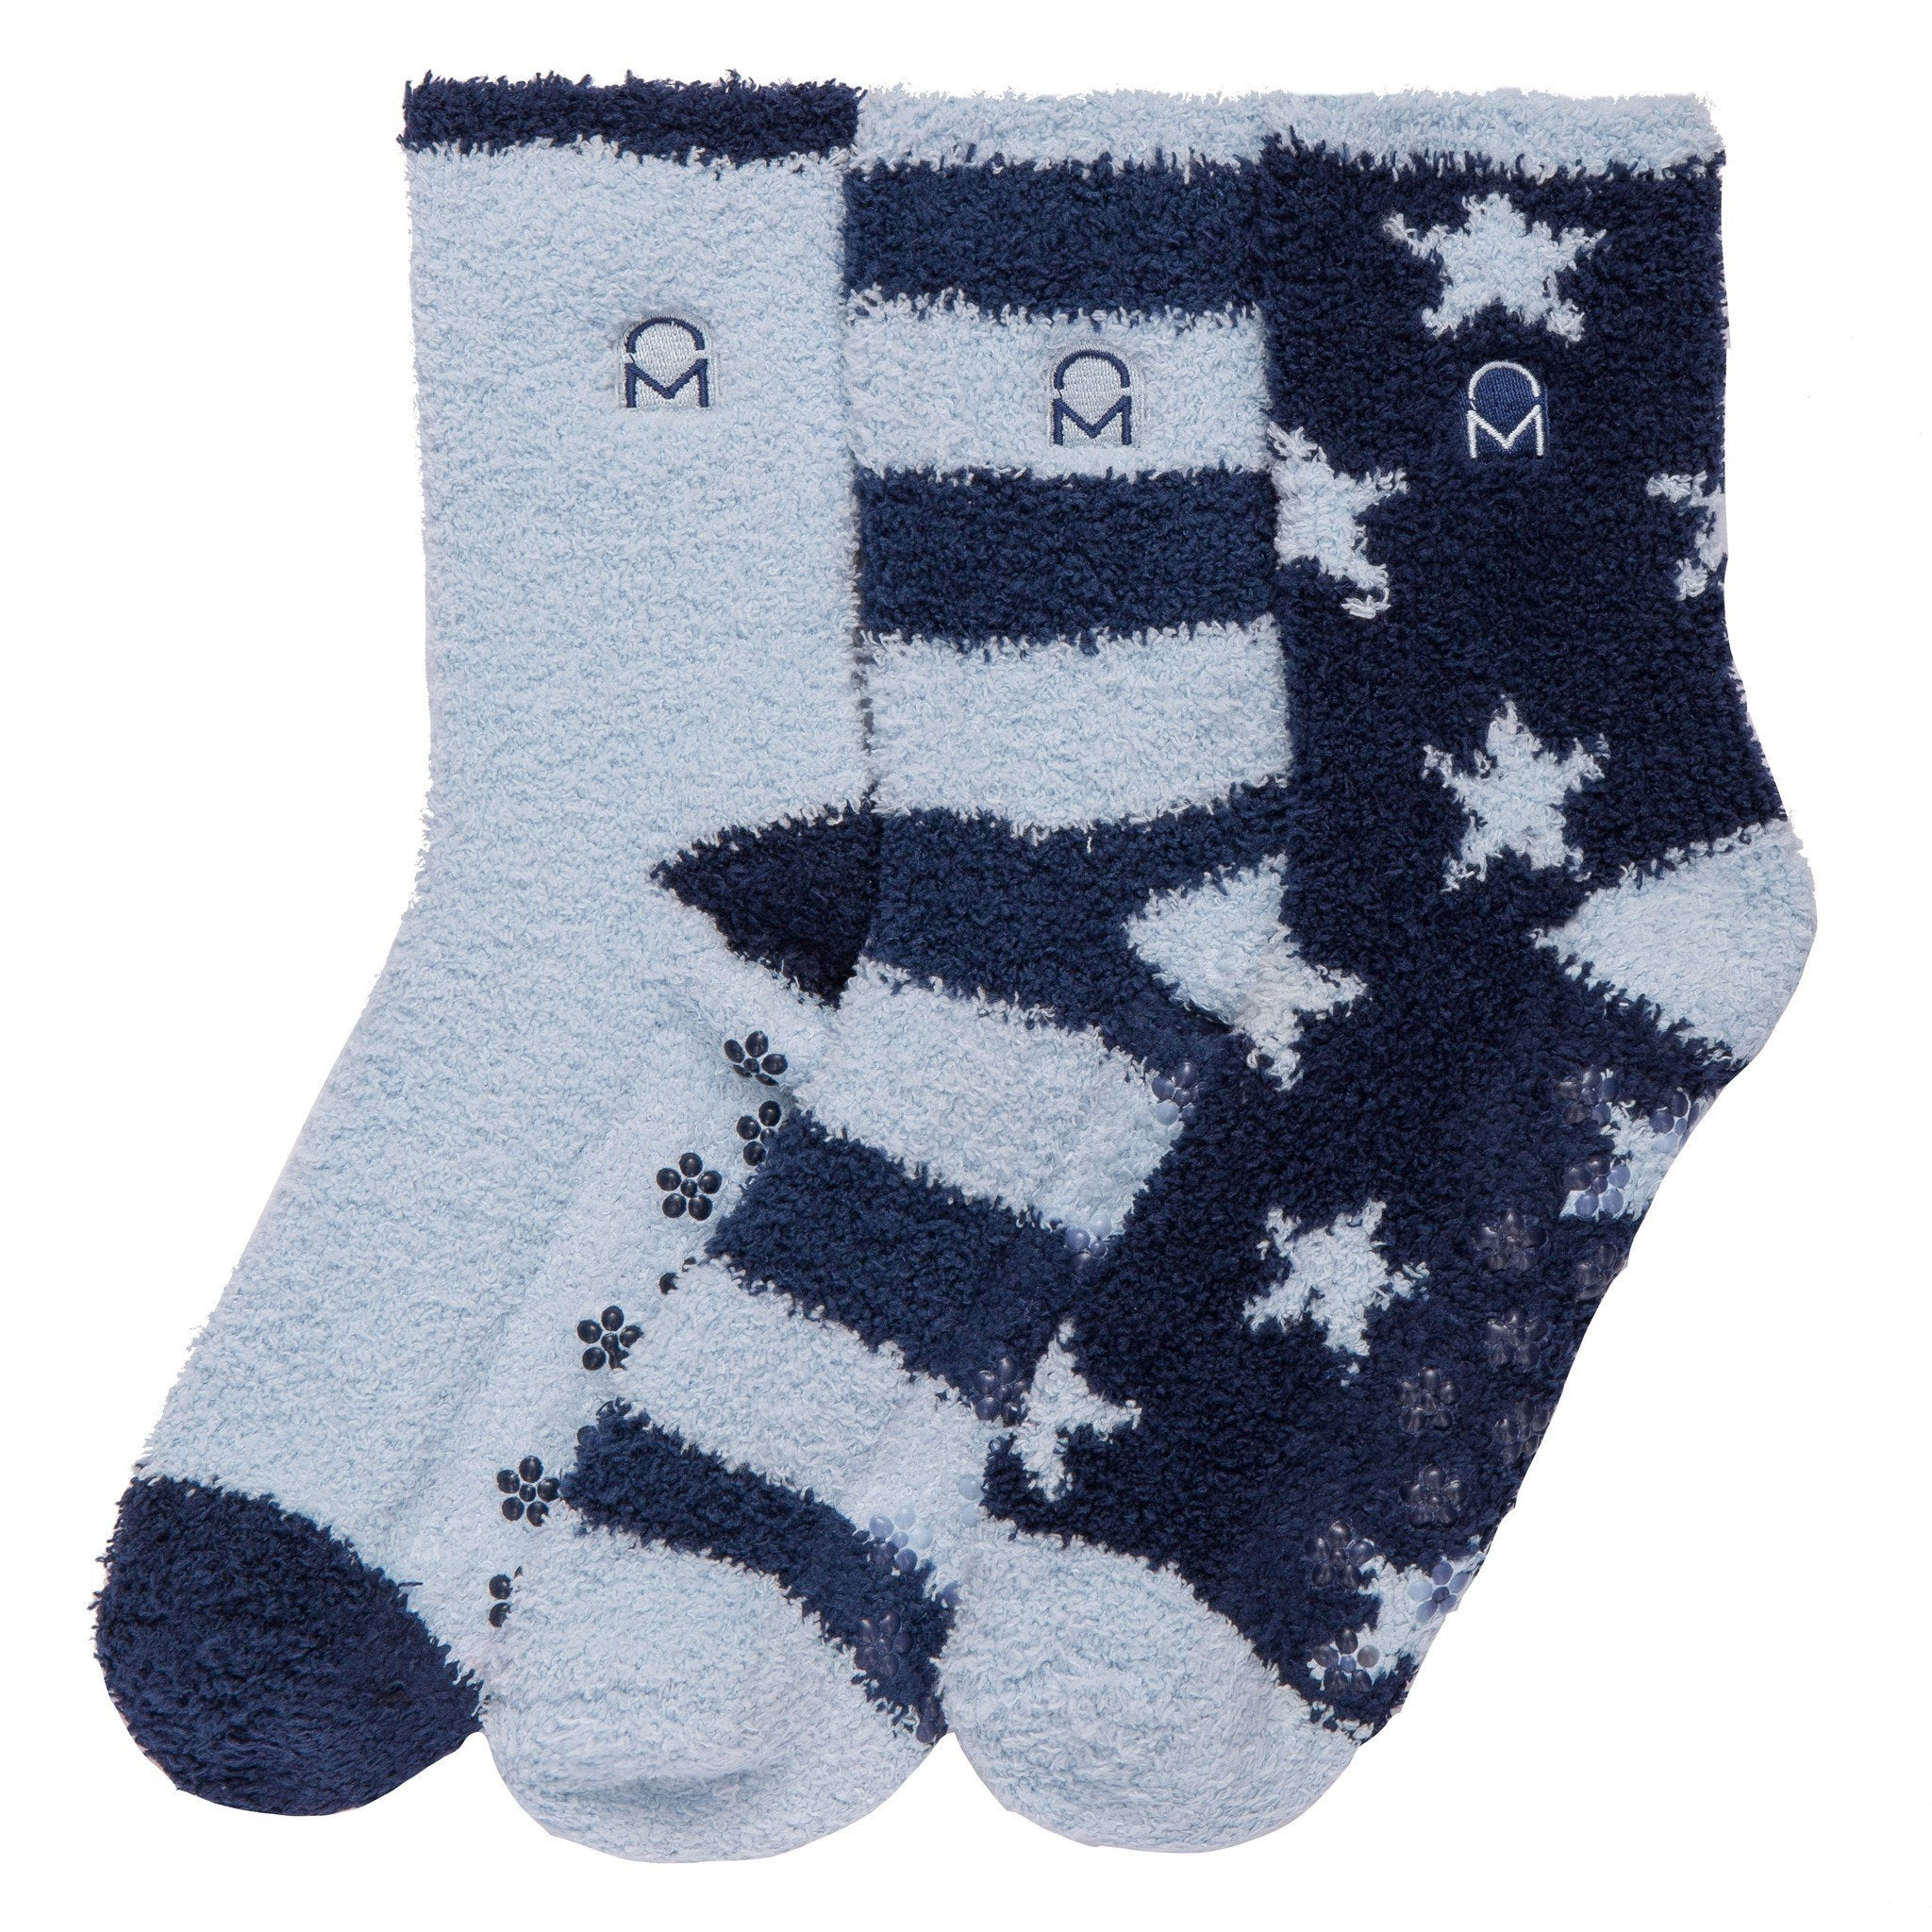 Women's (3 Pairs) Soft Anti-Skid Fuzzy Winter Crew Socks - Set B8